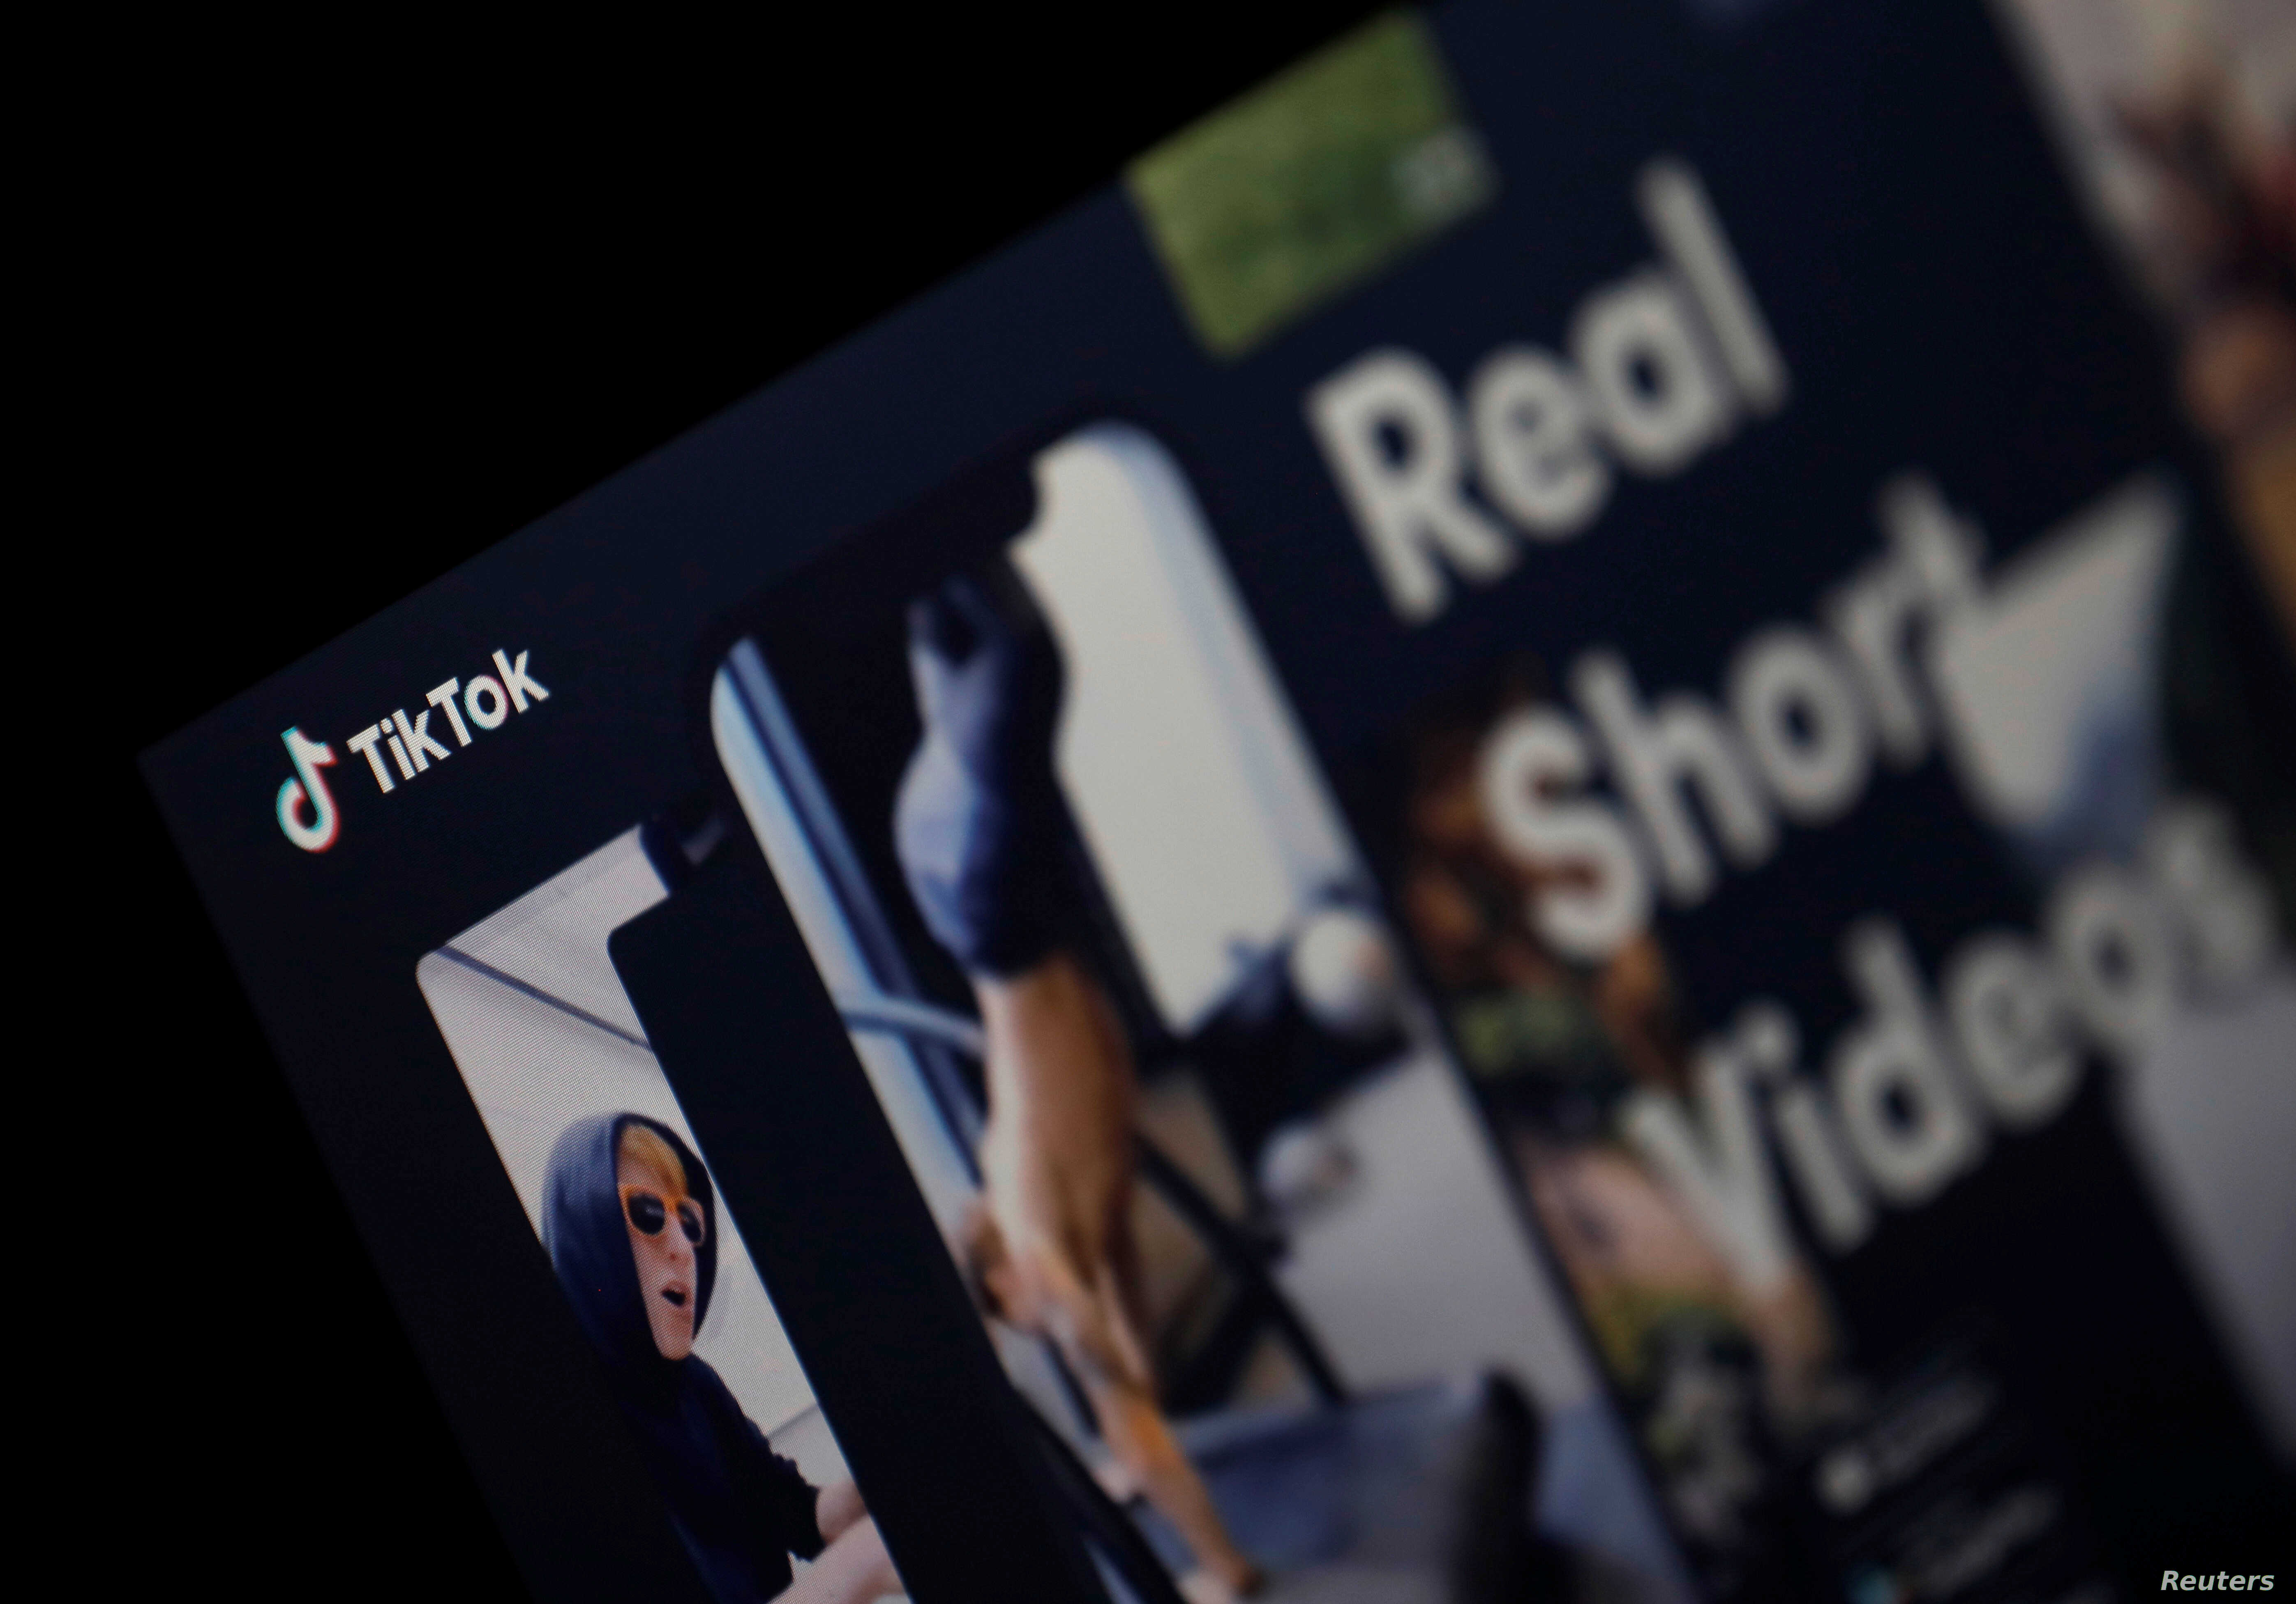 The logo of the TikTok application is seen on a screen.